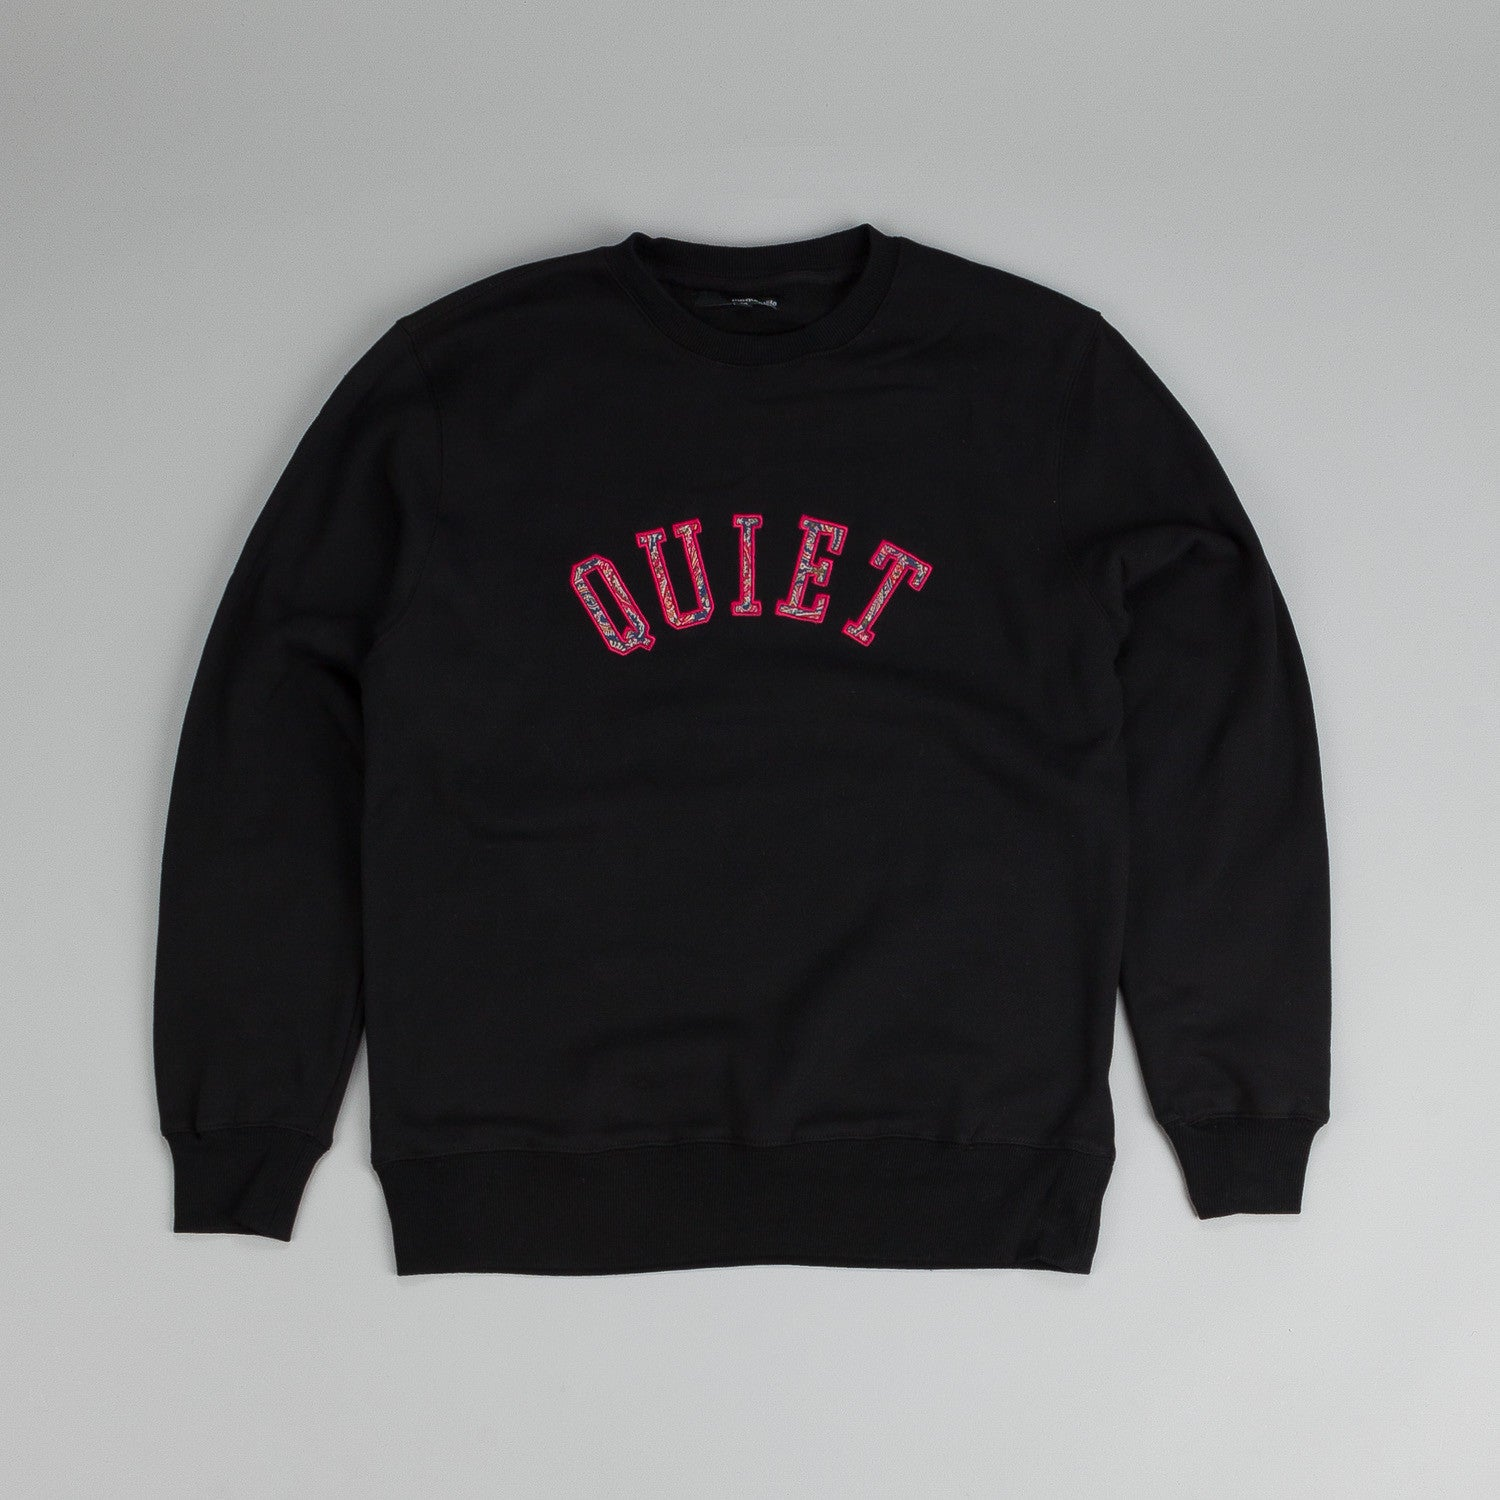 The Quiet Life Paisley Applique Crew Sweatshirt Black